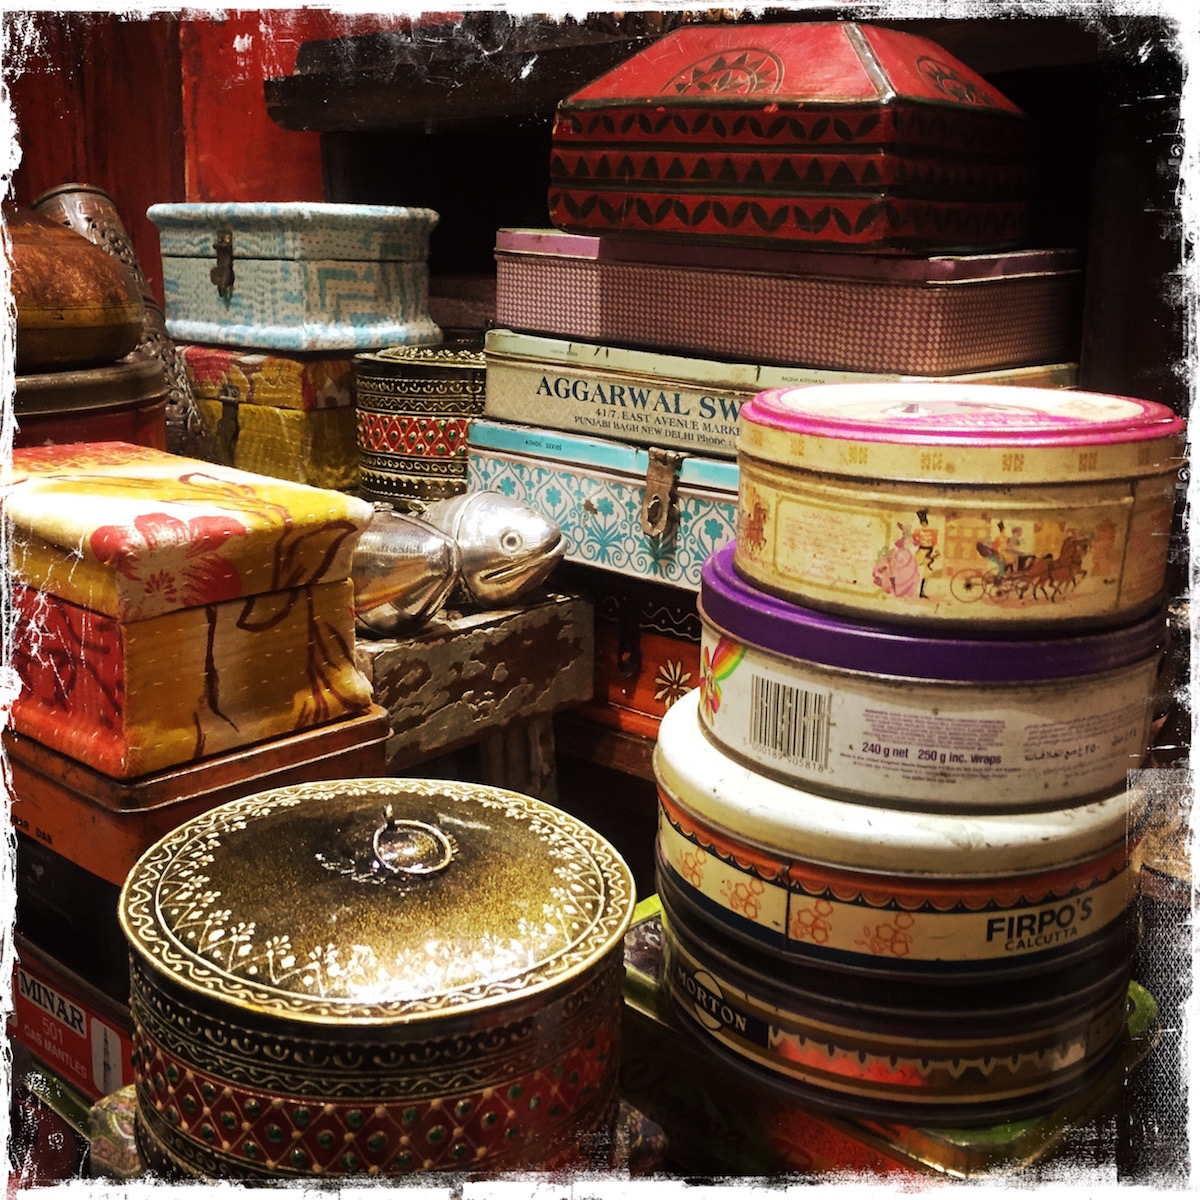 Vintage Tins from India by Barbara Sinclair